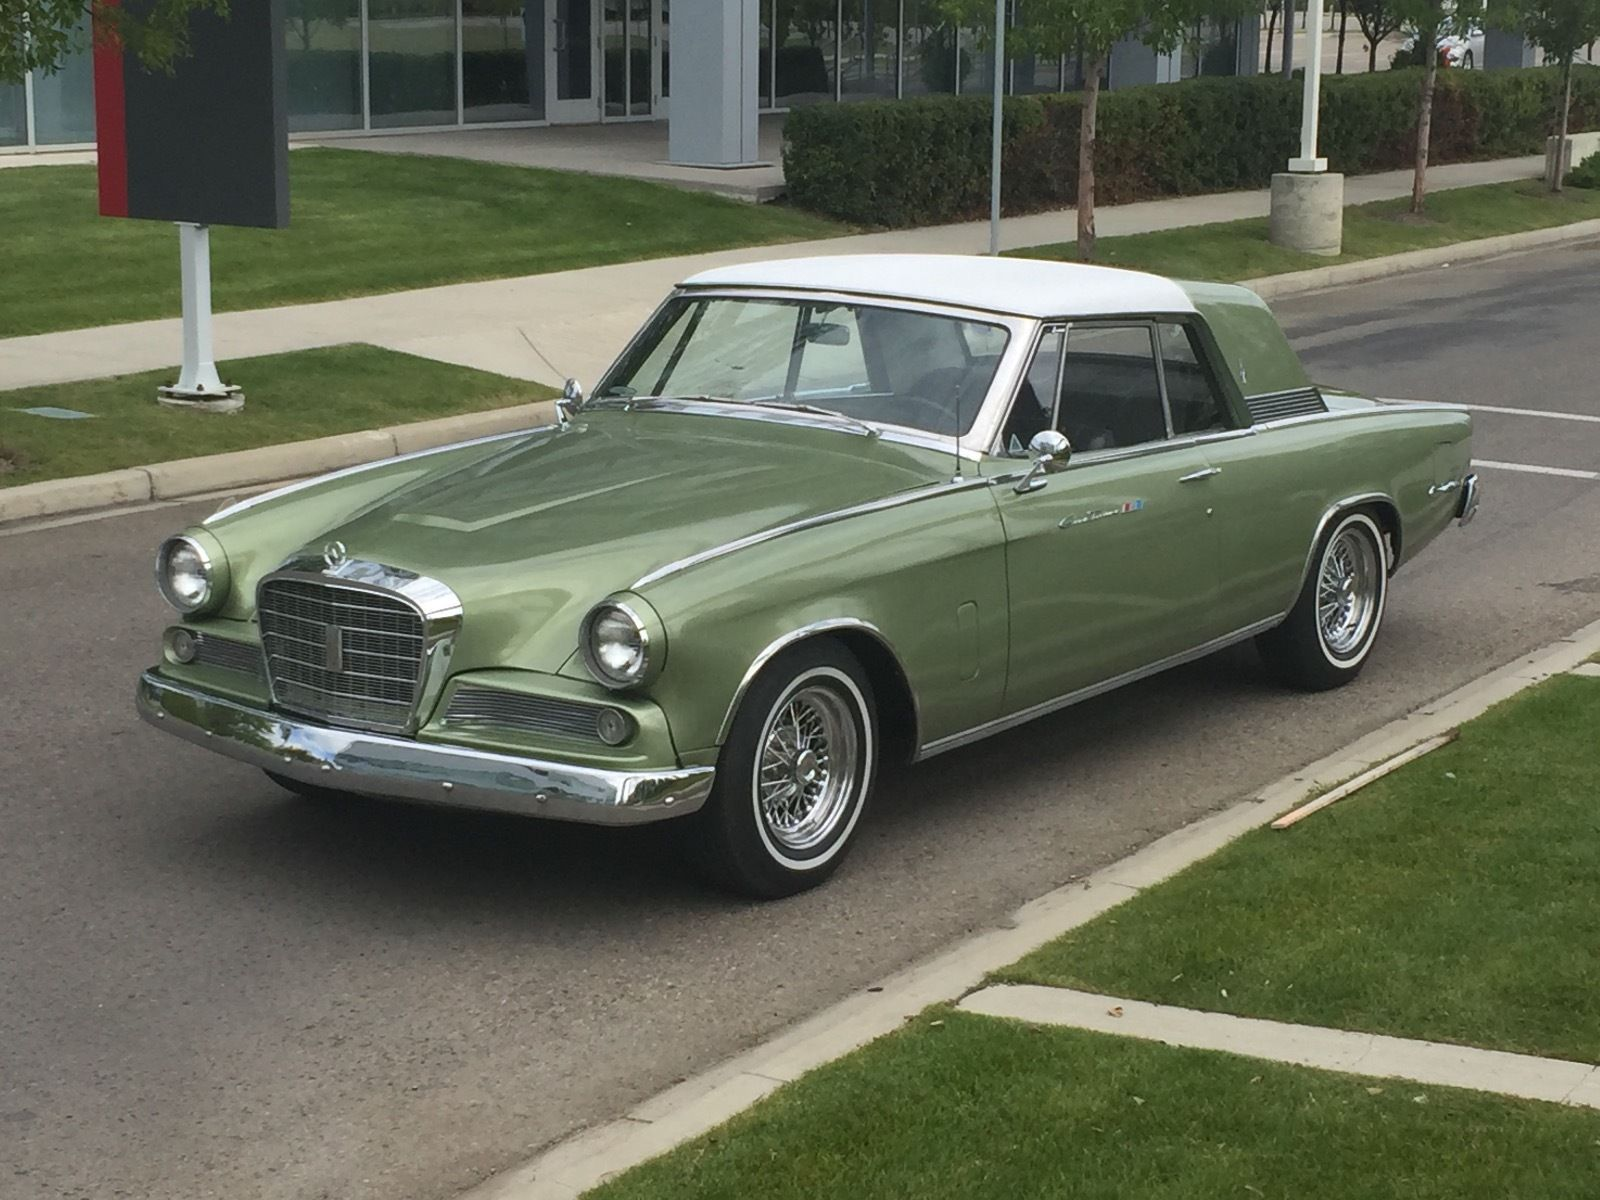 1964 Studebaker Gran Turismo | Turismo, Motor car and Vehicle